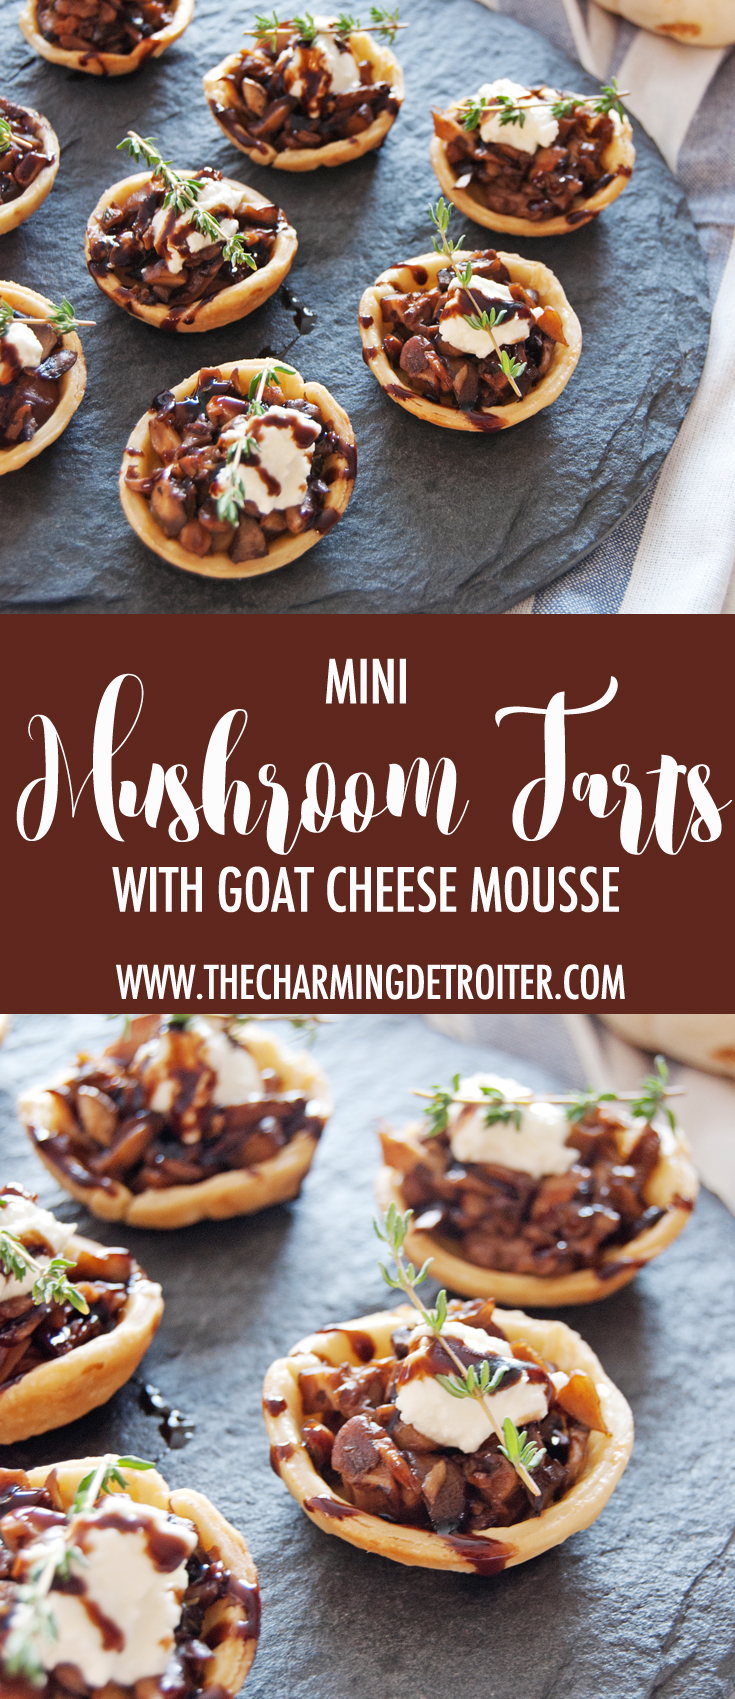 These mini mushroom tarts are a show stopping hors d'oeuvre, and feature sautéed mushrooms with goat cheese mousse and balsamic glaze.